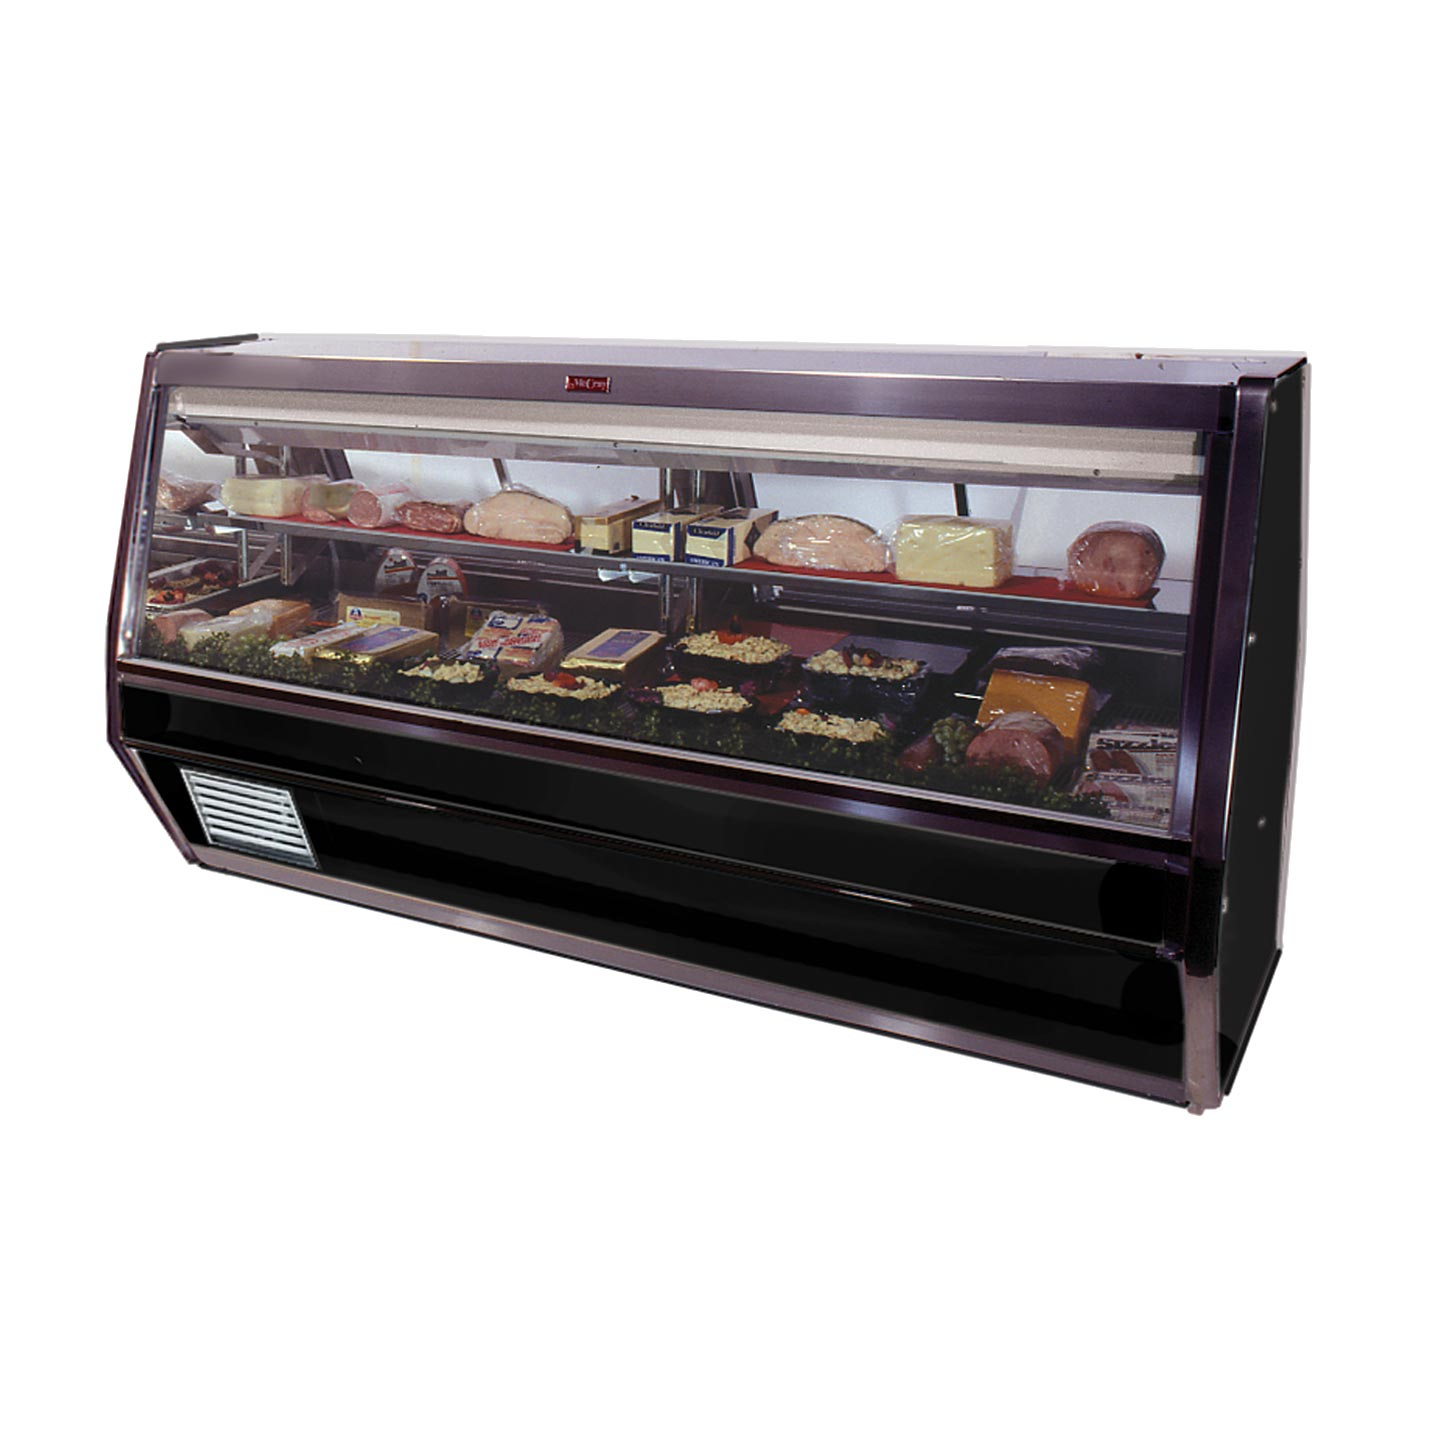 Howard-McCray R-CDS40E-12-BE-LED display case, refrigerated deli